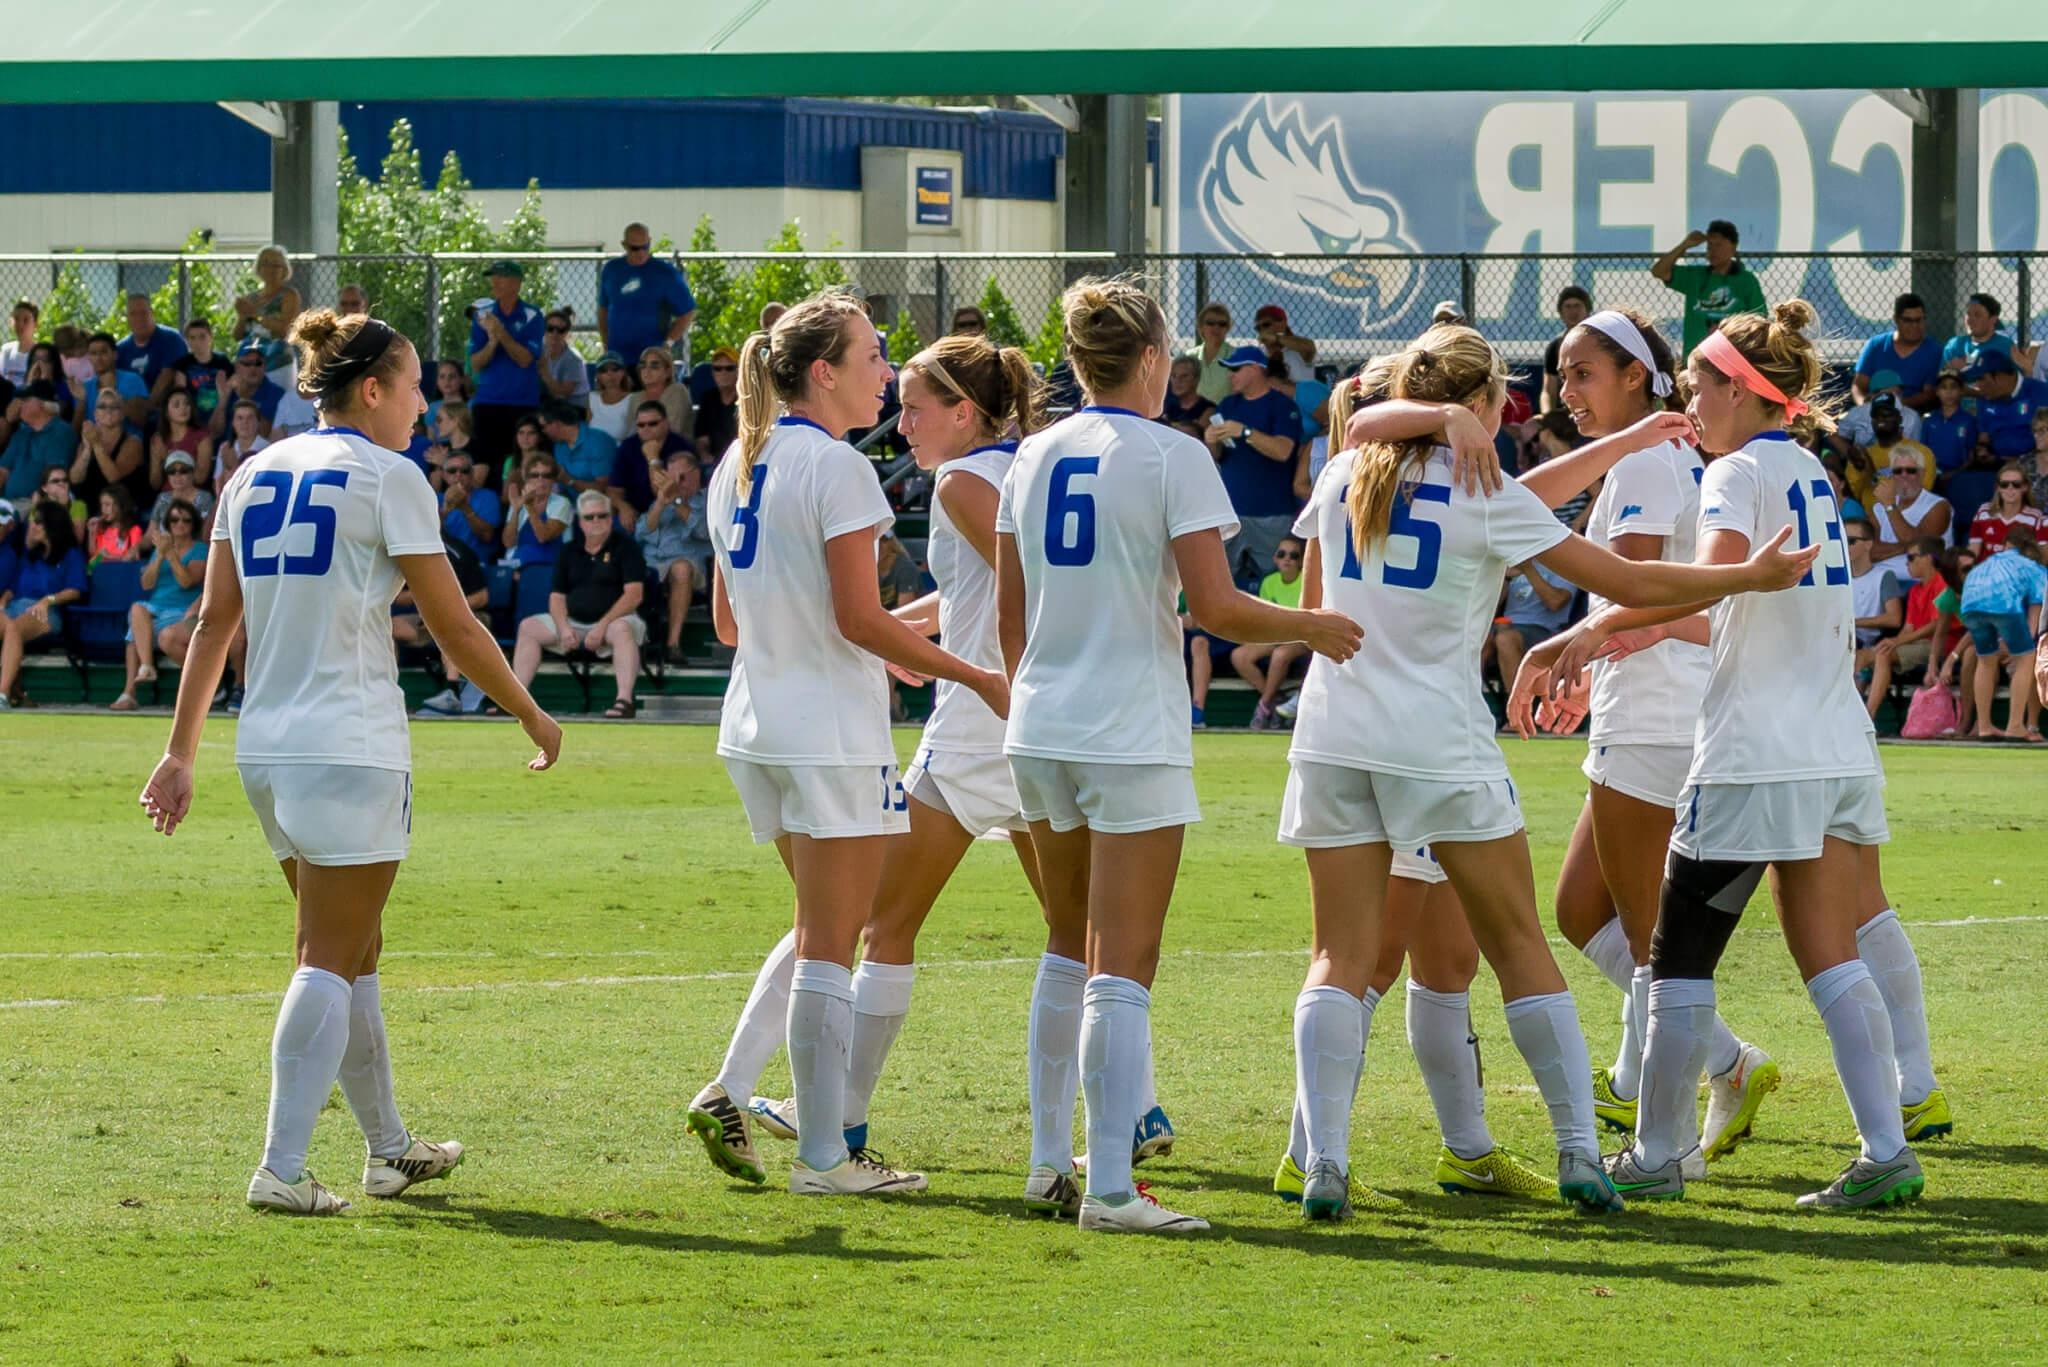 FGCU women's soccer kicks off 2016 season with a pair of games in the bay area